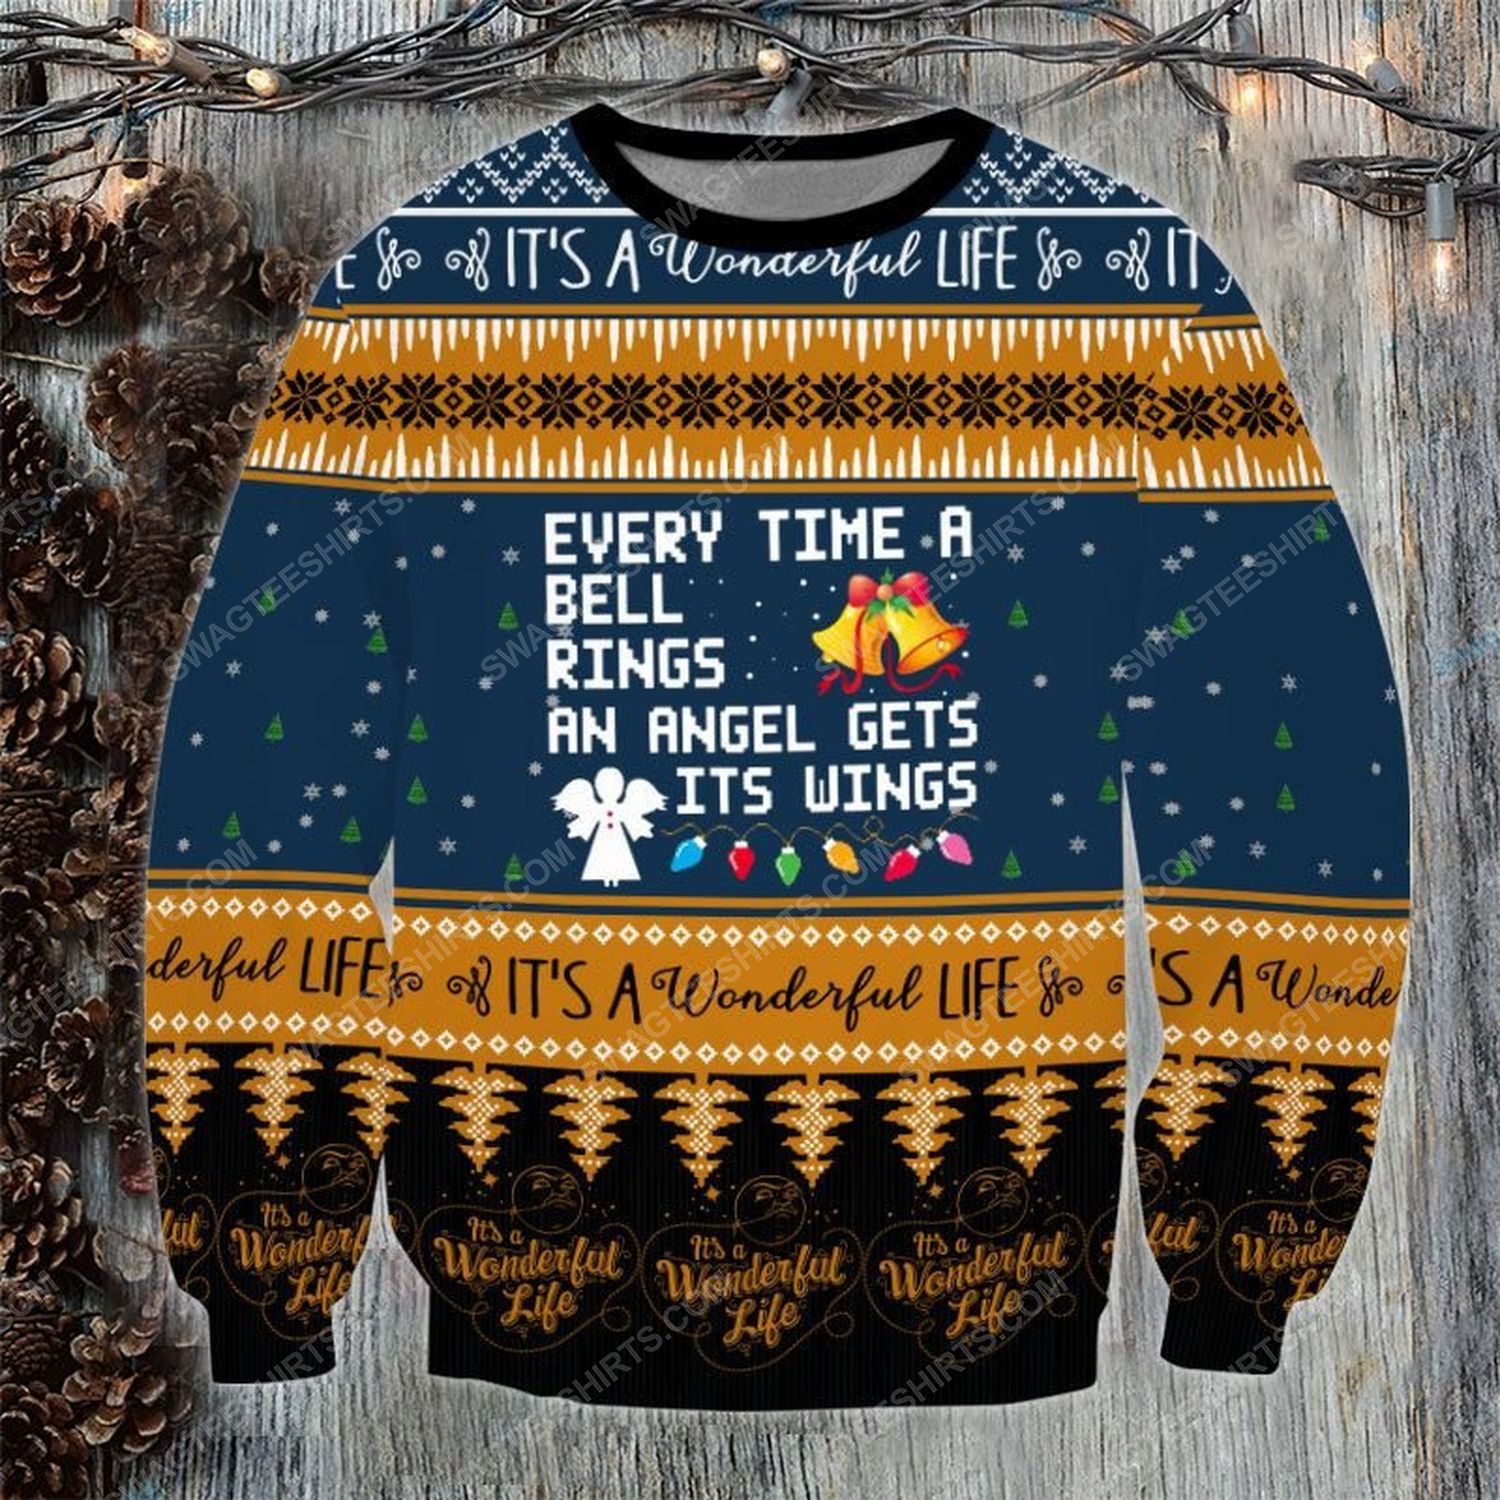 Every time the bell rings an angel gets his wings ugly christmas sweater - Copy